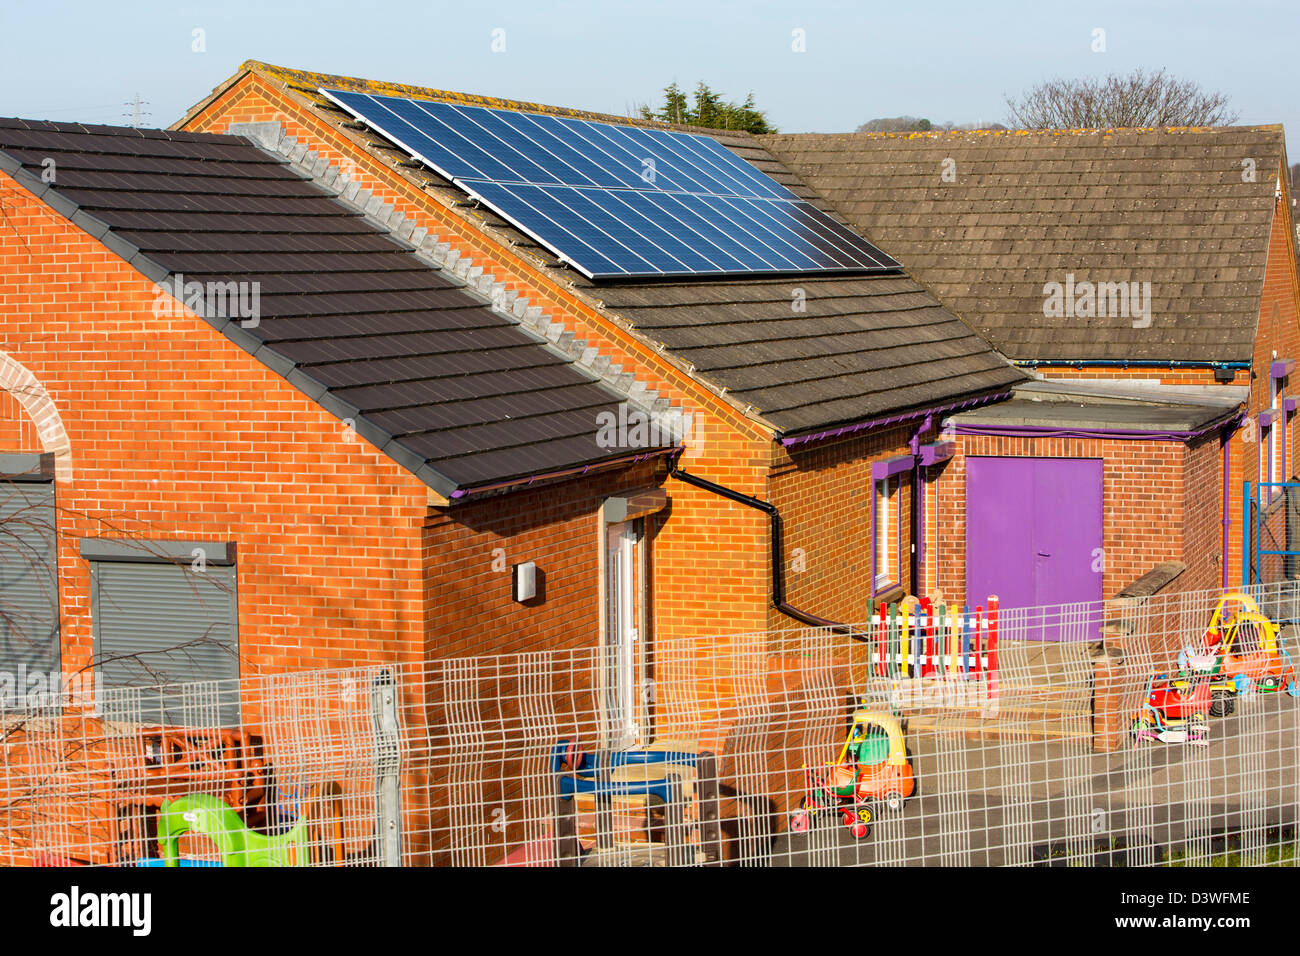 A nursery school in Seaton near Workington, Cumbria UK, with solar panels on the roof. - Stock Image